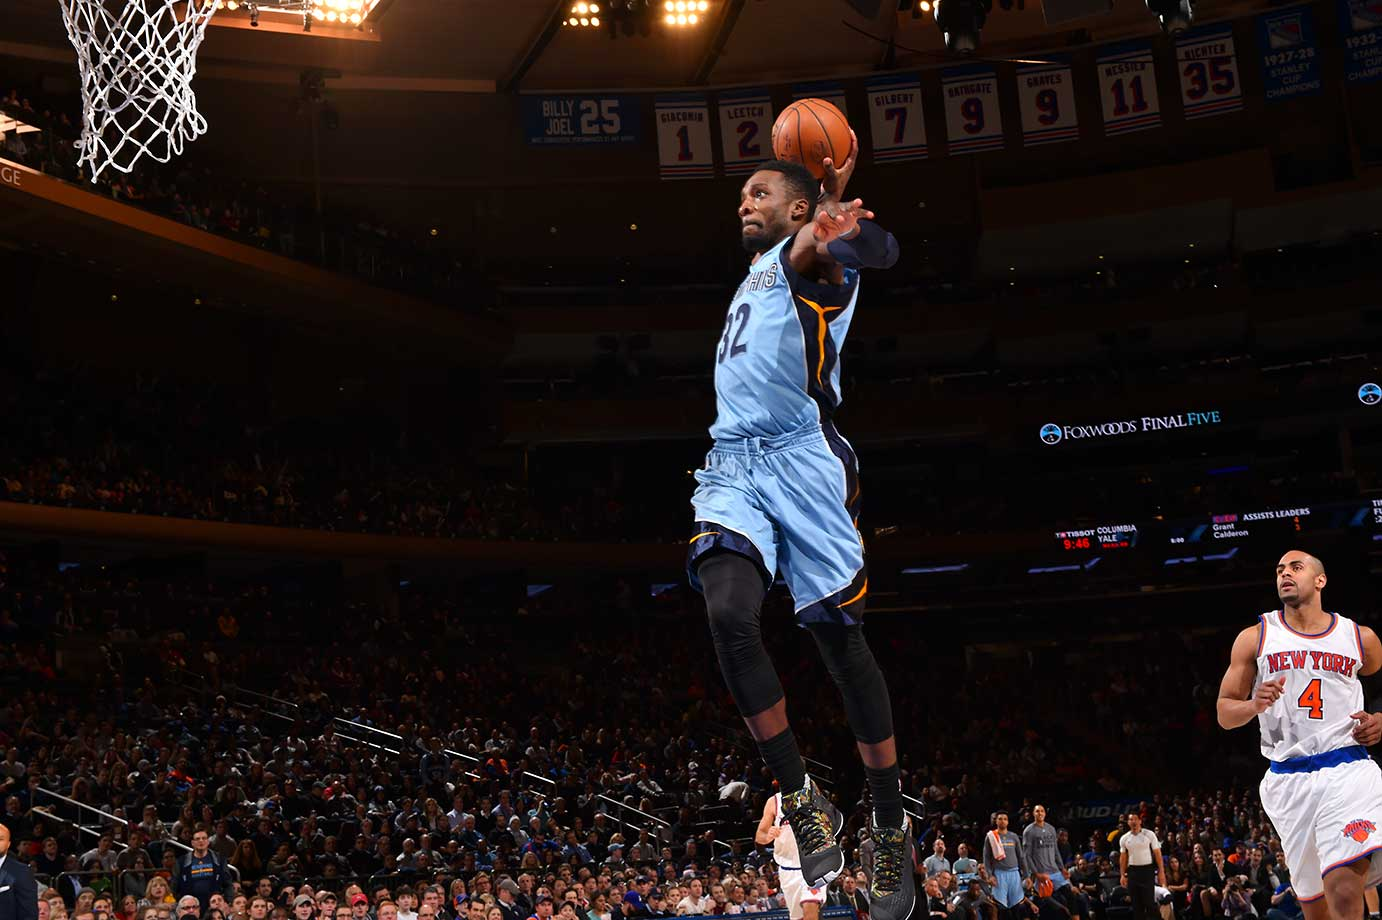 Jeff Green of the Memphis Grizzlies goes up for the dunk against the New York Knicks at Madison Square Garden.